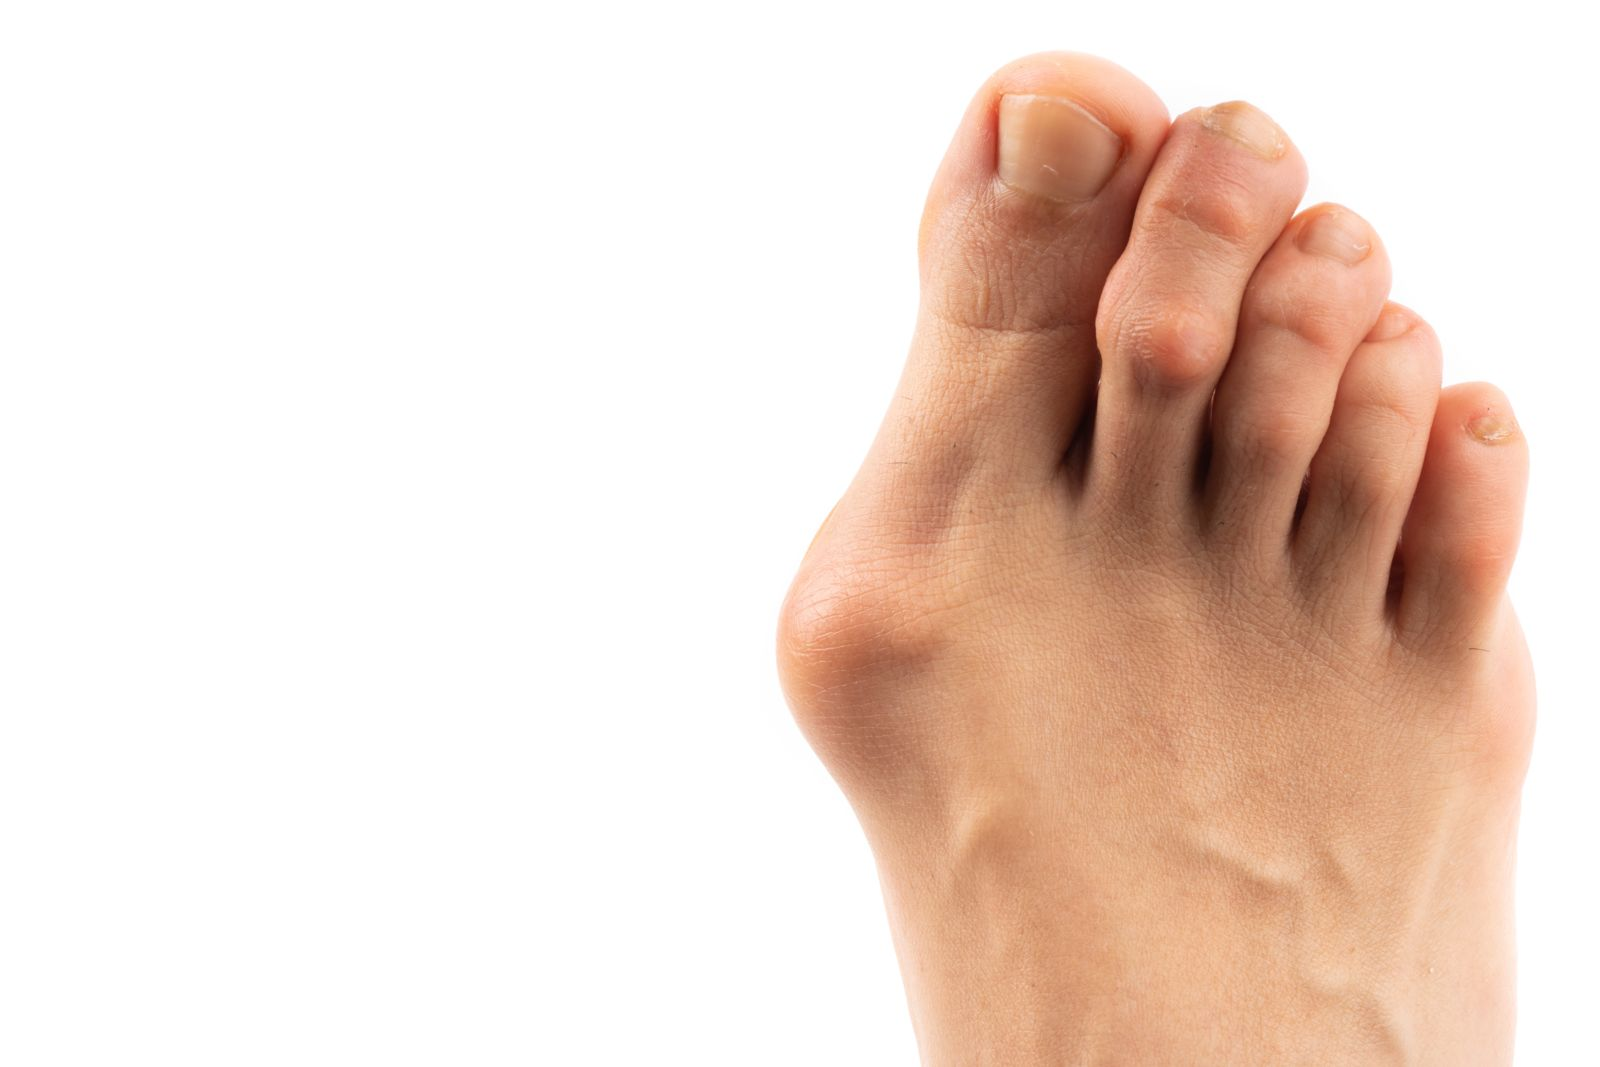 Driving may be limited after bunion surgery